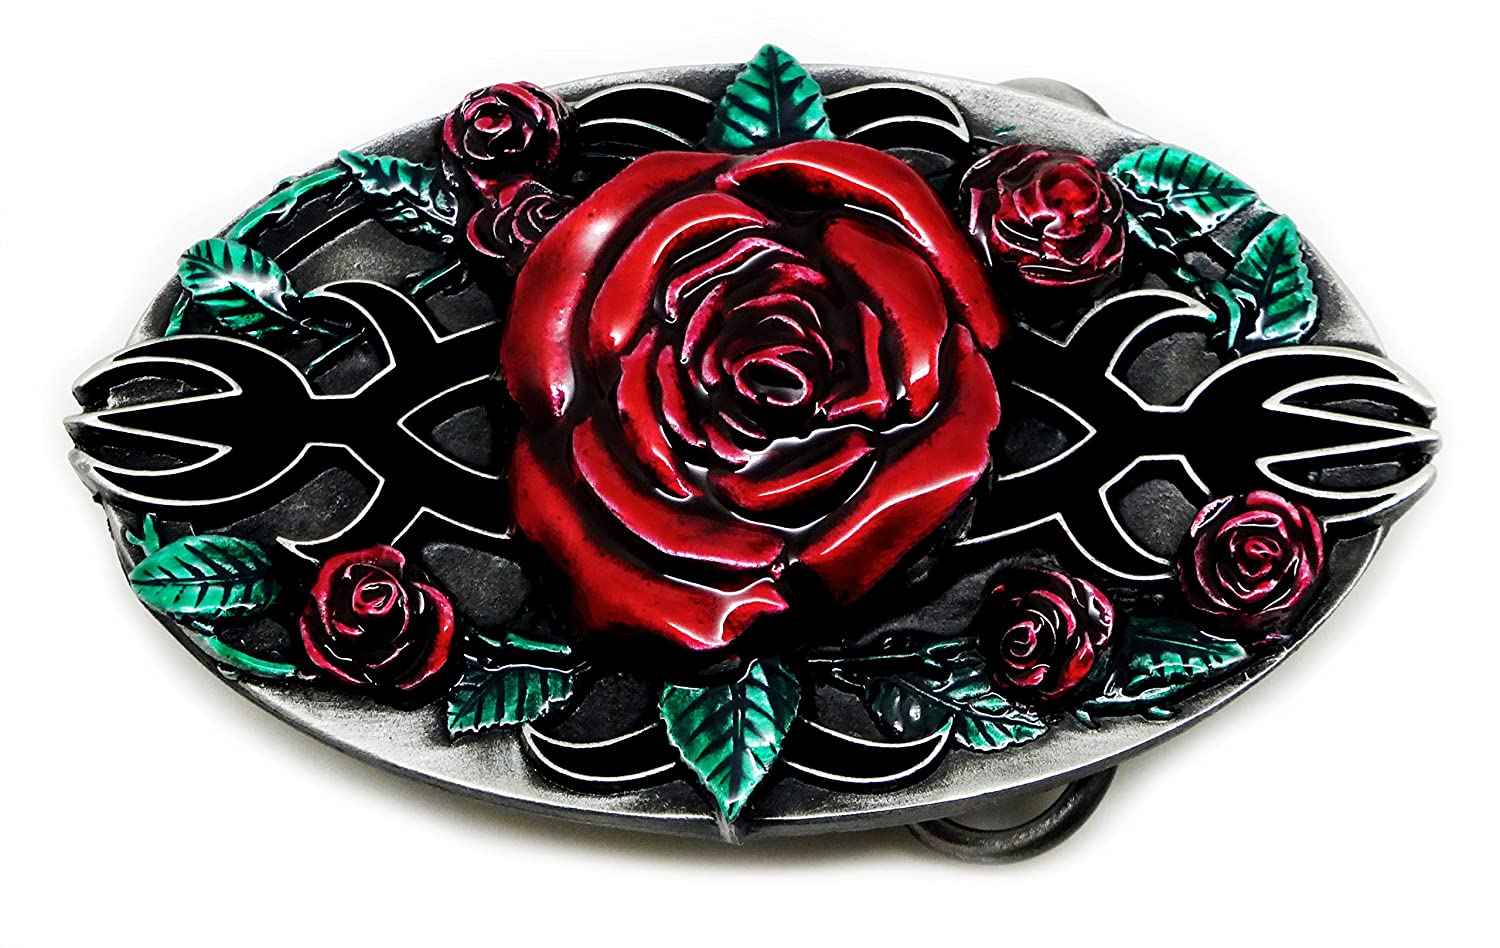 Red Roses Belt Buckle Gothic Themed Authentic Bulldog Buckle Co Branded Product TAN 386 A